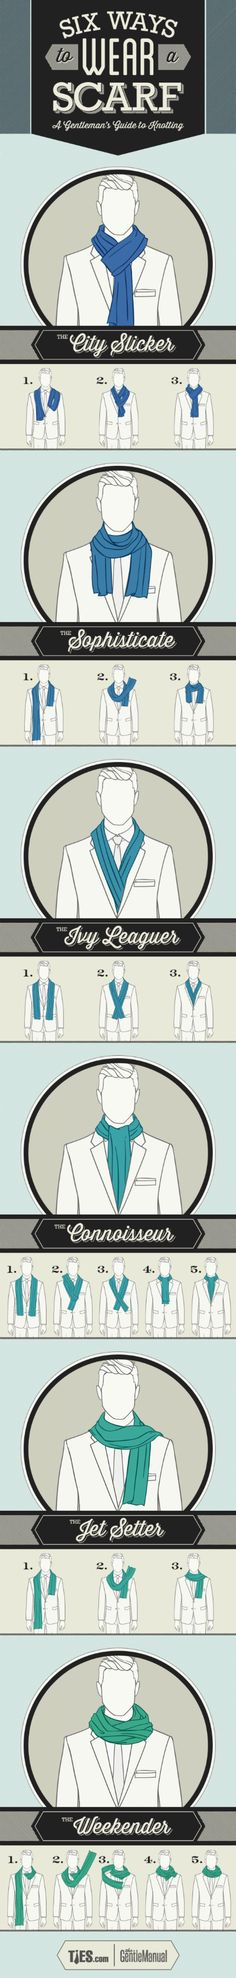 Gentlemen's Guide To Scarf Tying Infographic